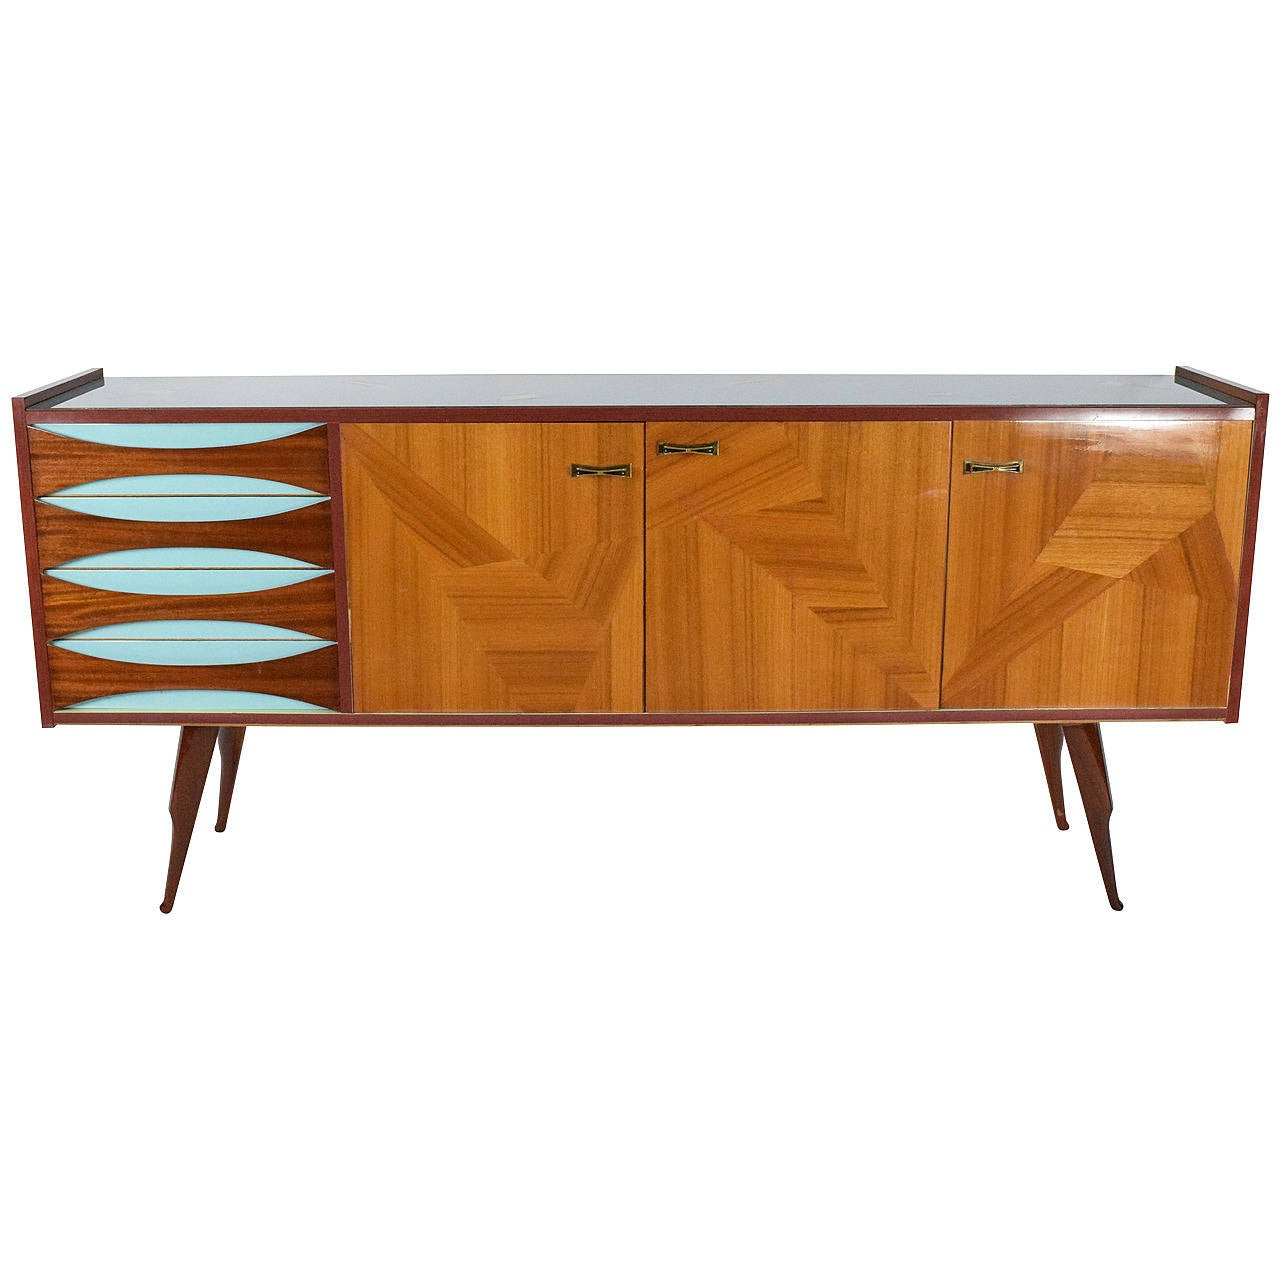 Italian sideboard with glass top at 1stdibs for Sideboard glas